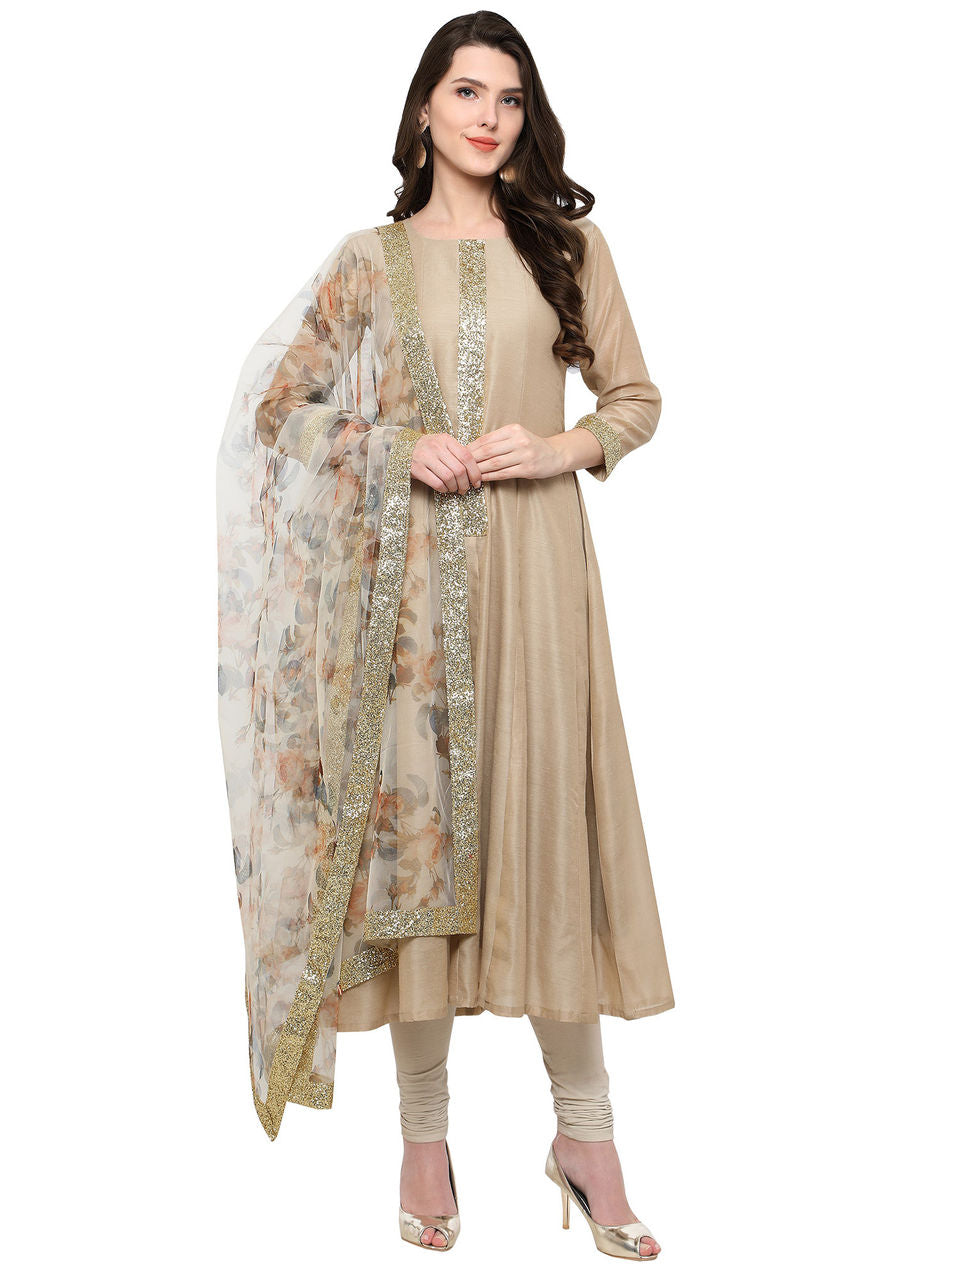 Beige & Off-White Anarkali Kurta with Dupatta with Shimmer Details - Riviera Closet